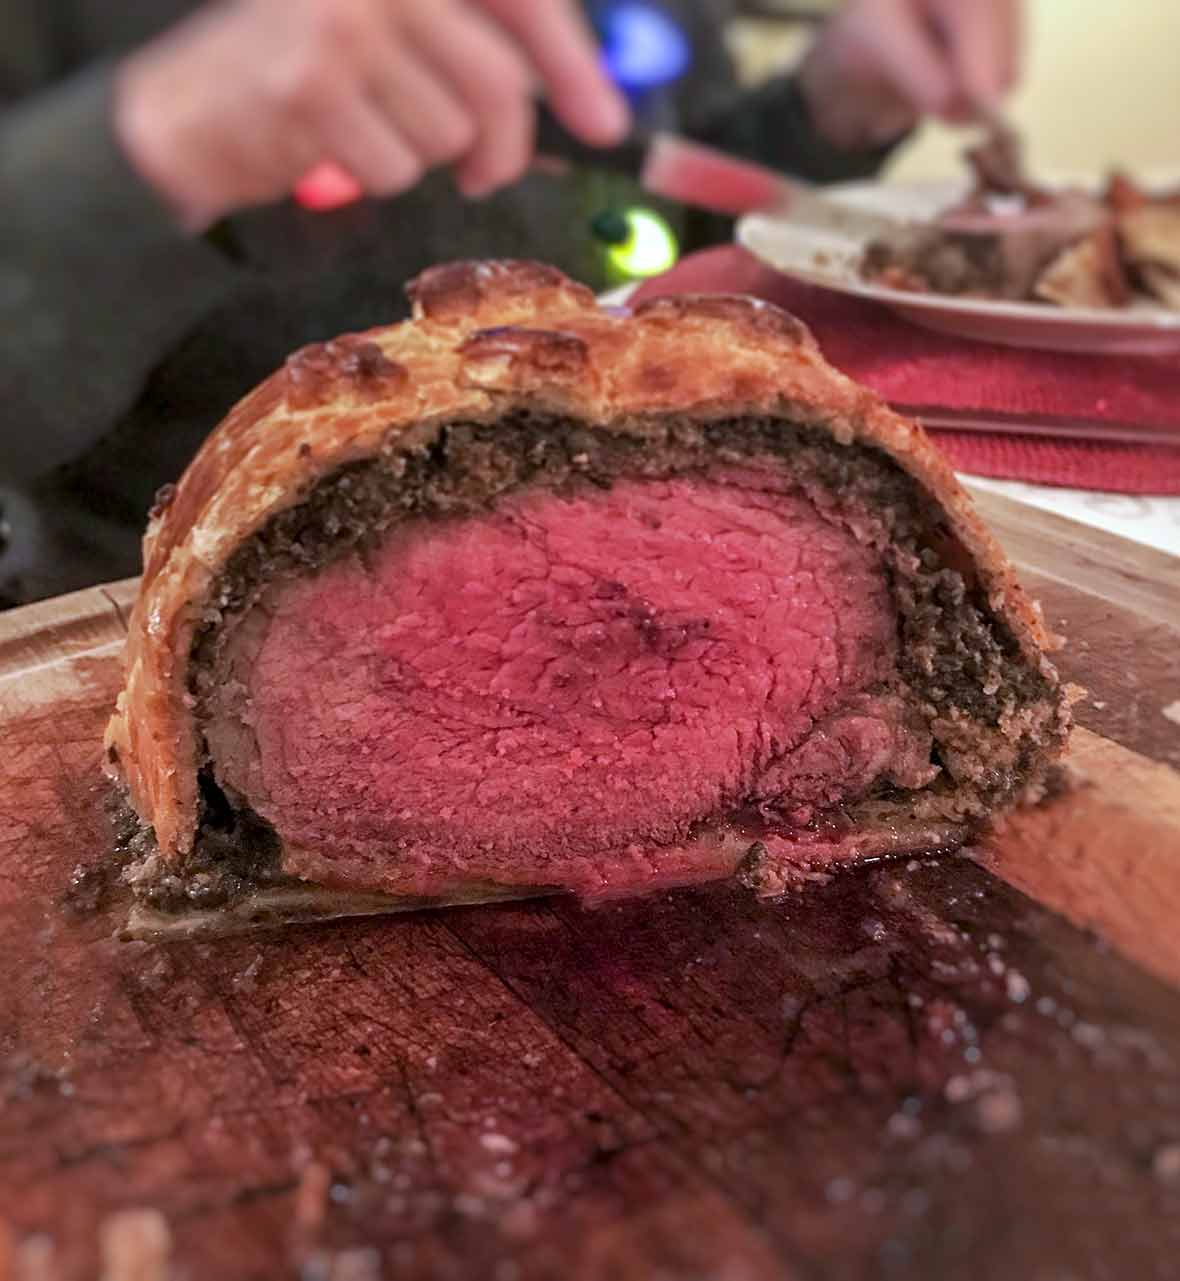 A beef tenderloin covered in pate and chopped mushrooms and wrapped in puff pastry on a cutting board